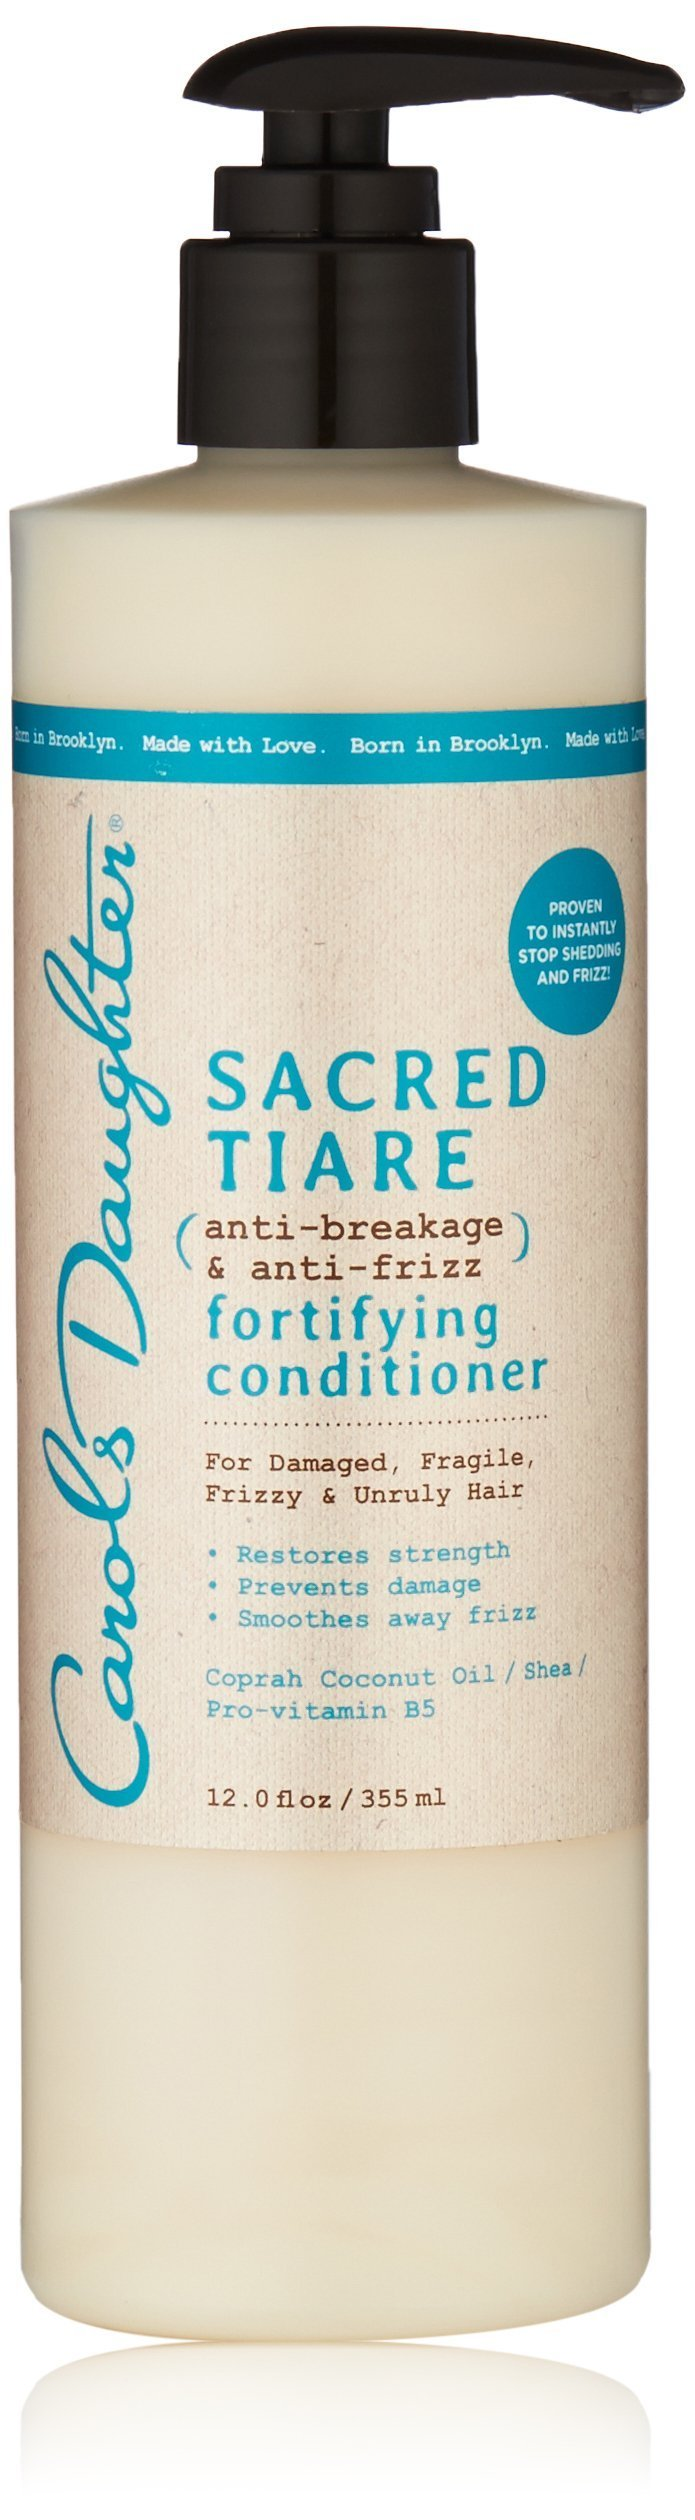 Carol's Daughter Sacred Tiare Fortifying Conditioner, 12 fl oz (Packaging May Vary)